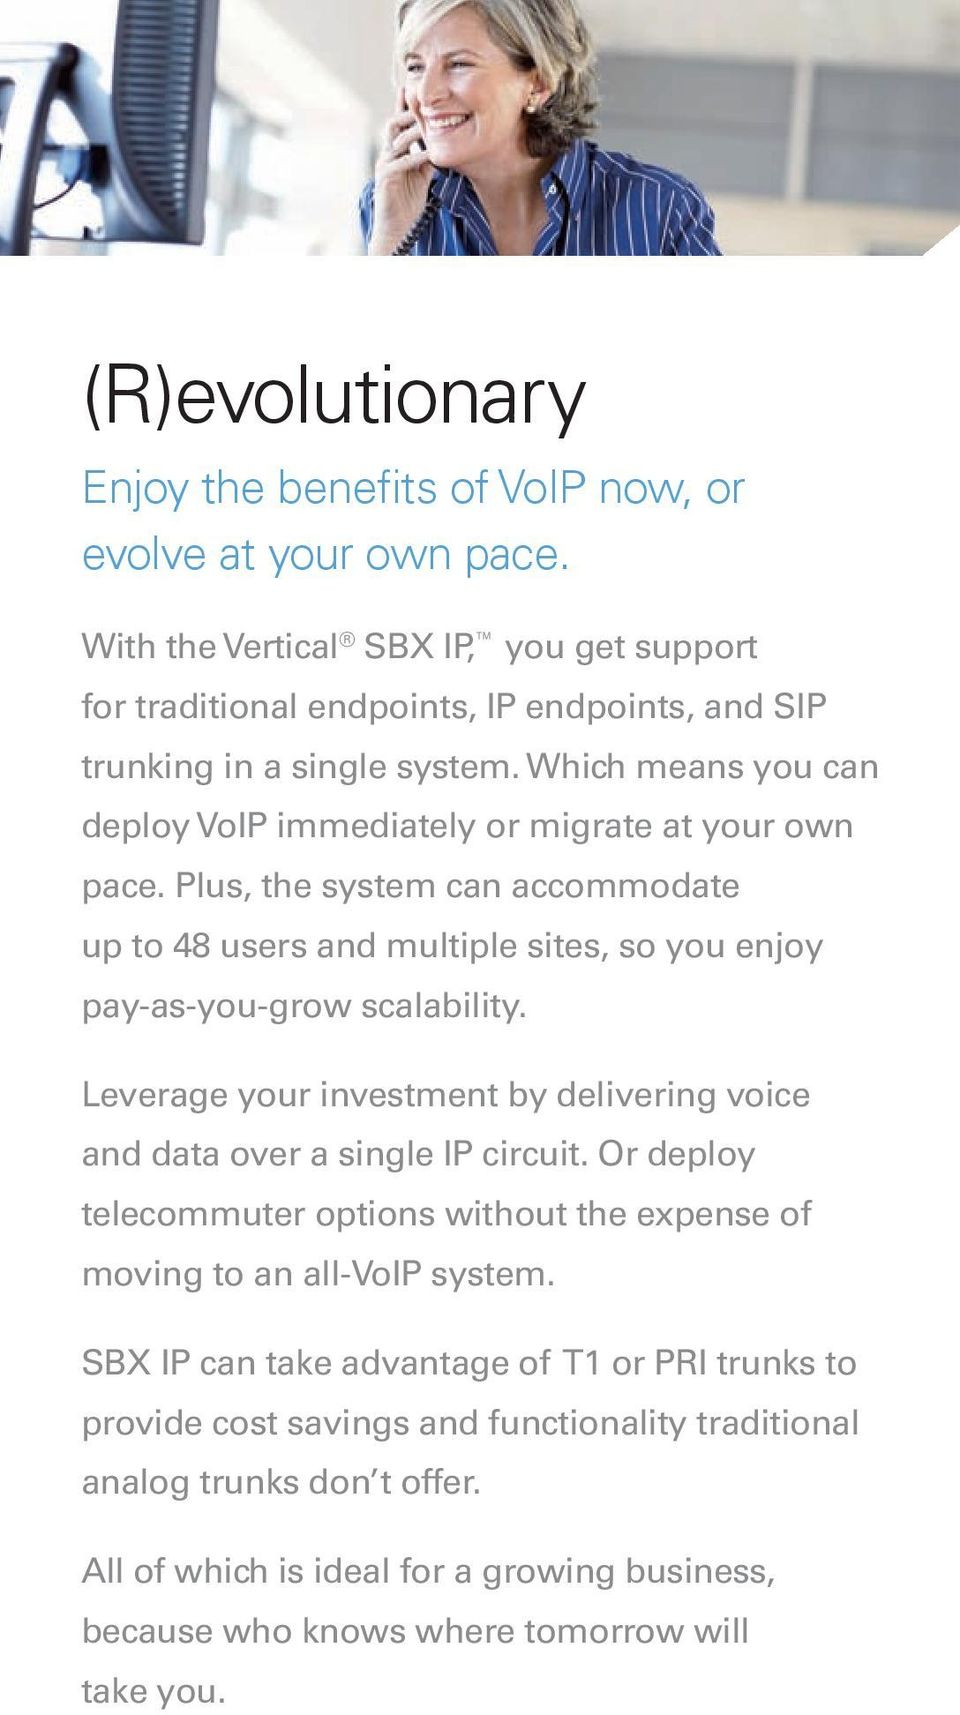 Which means you can deploy VoIP immediately or migrate at your own pace. Plus, the system can accommodate up to 48 users and multiple sites, so you enjoy pay-as-you-grow scalability.